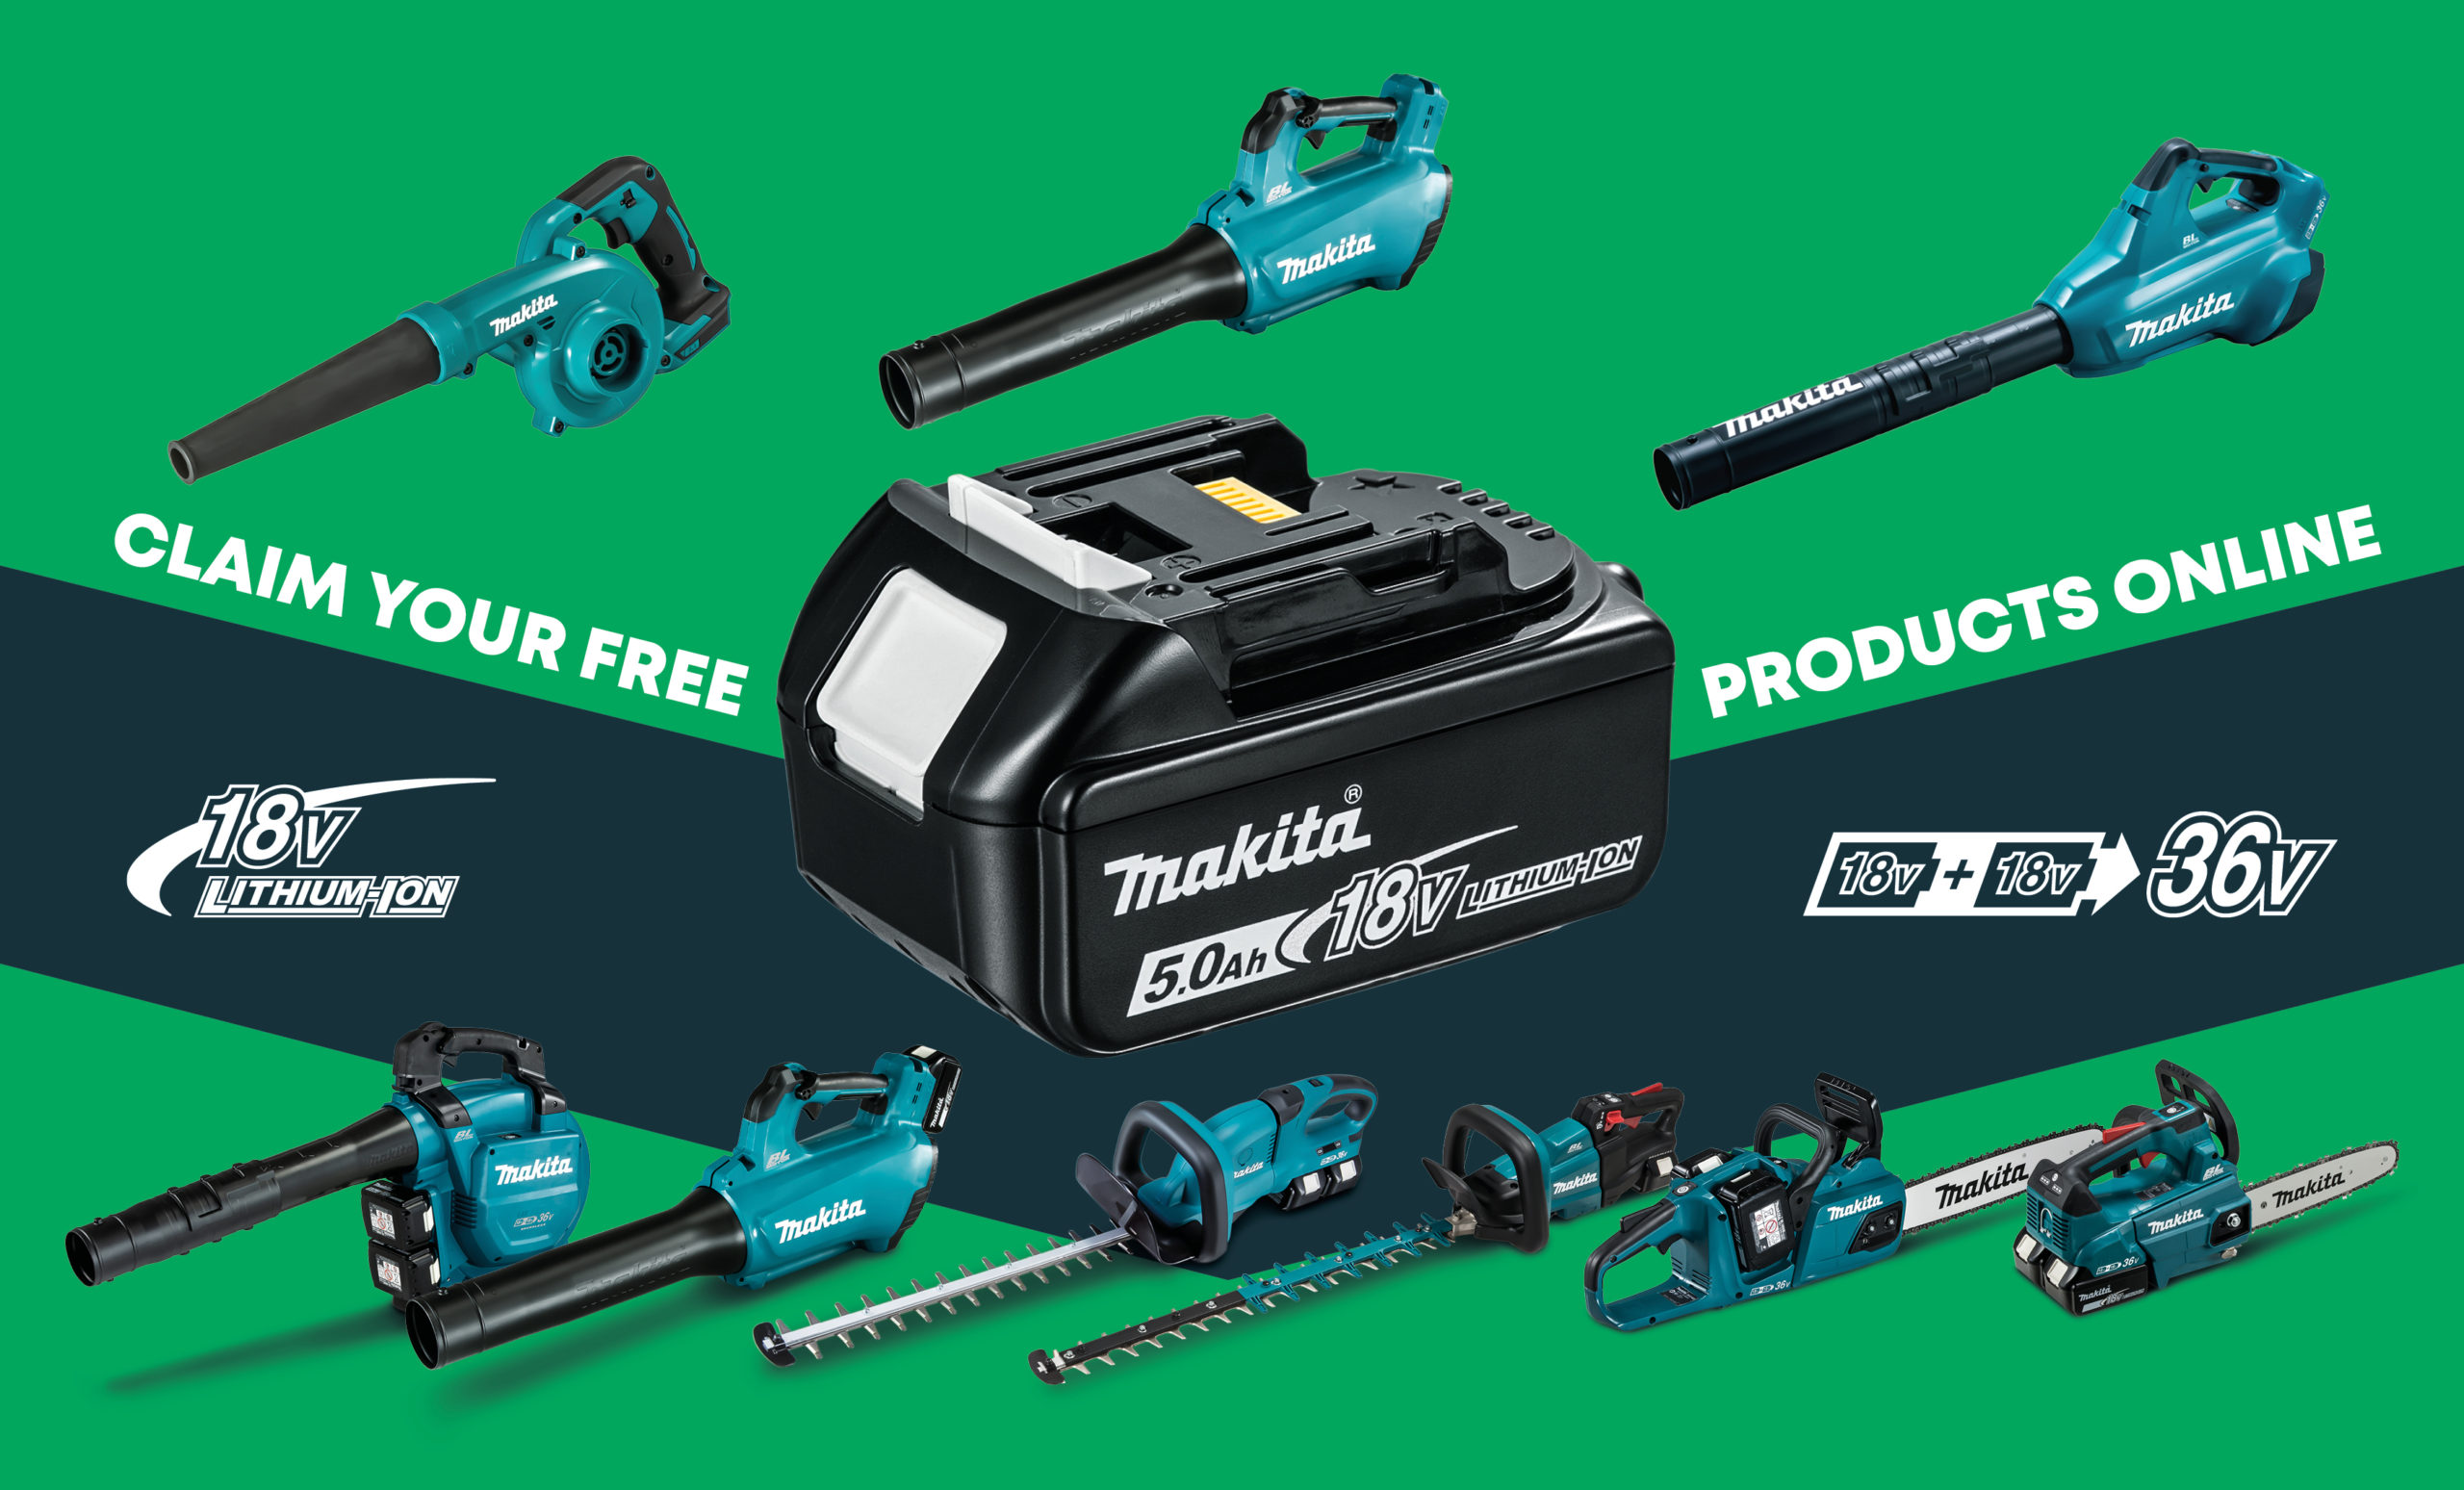 Makita's latest offer